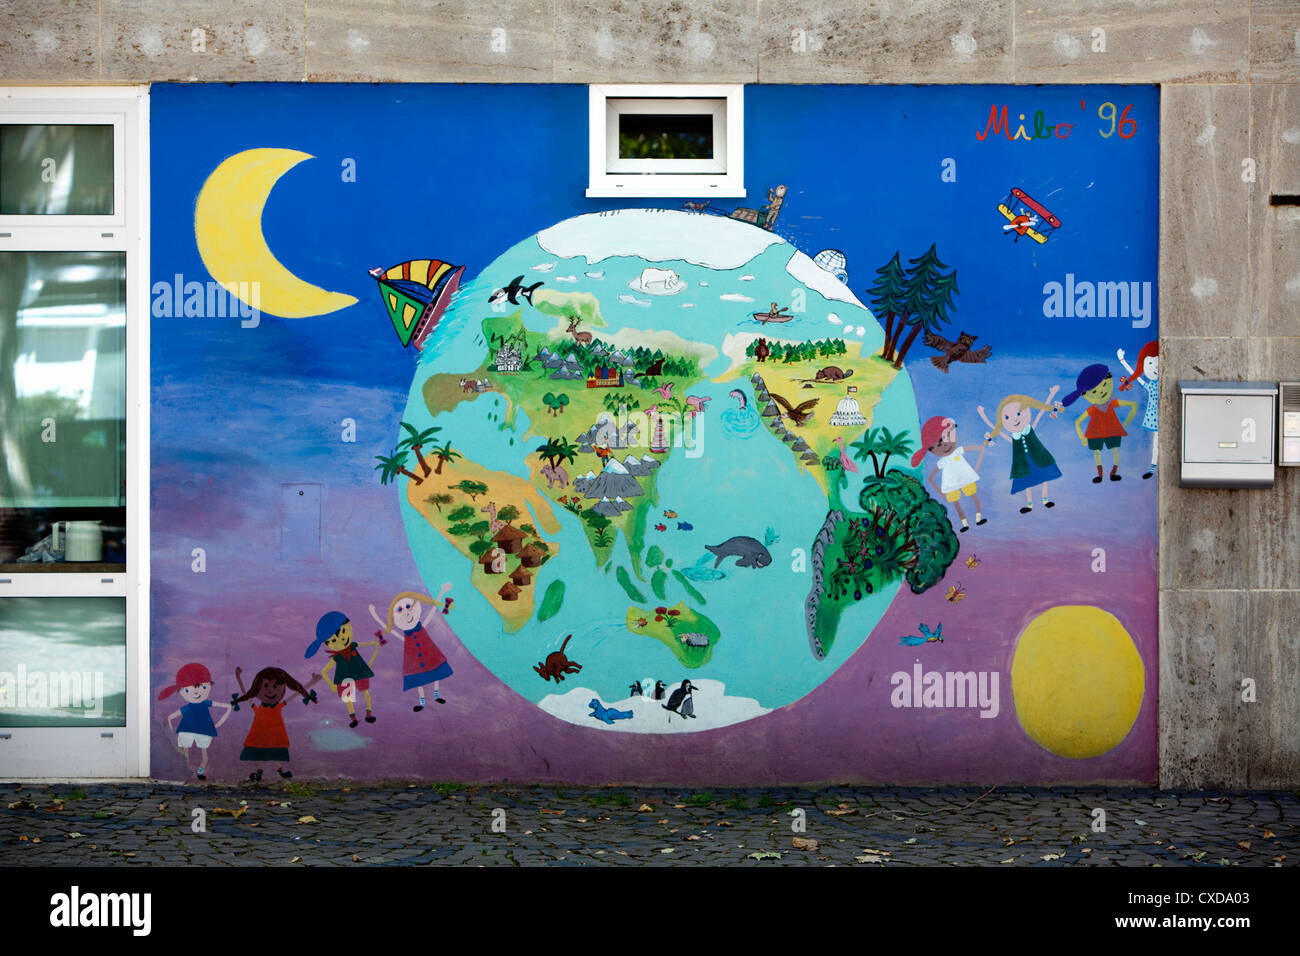 Children and a globe, painted by children, drawing, Graffiti - Stock Image